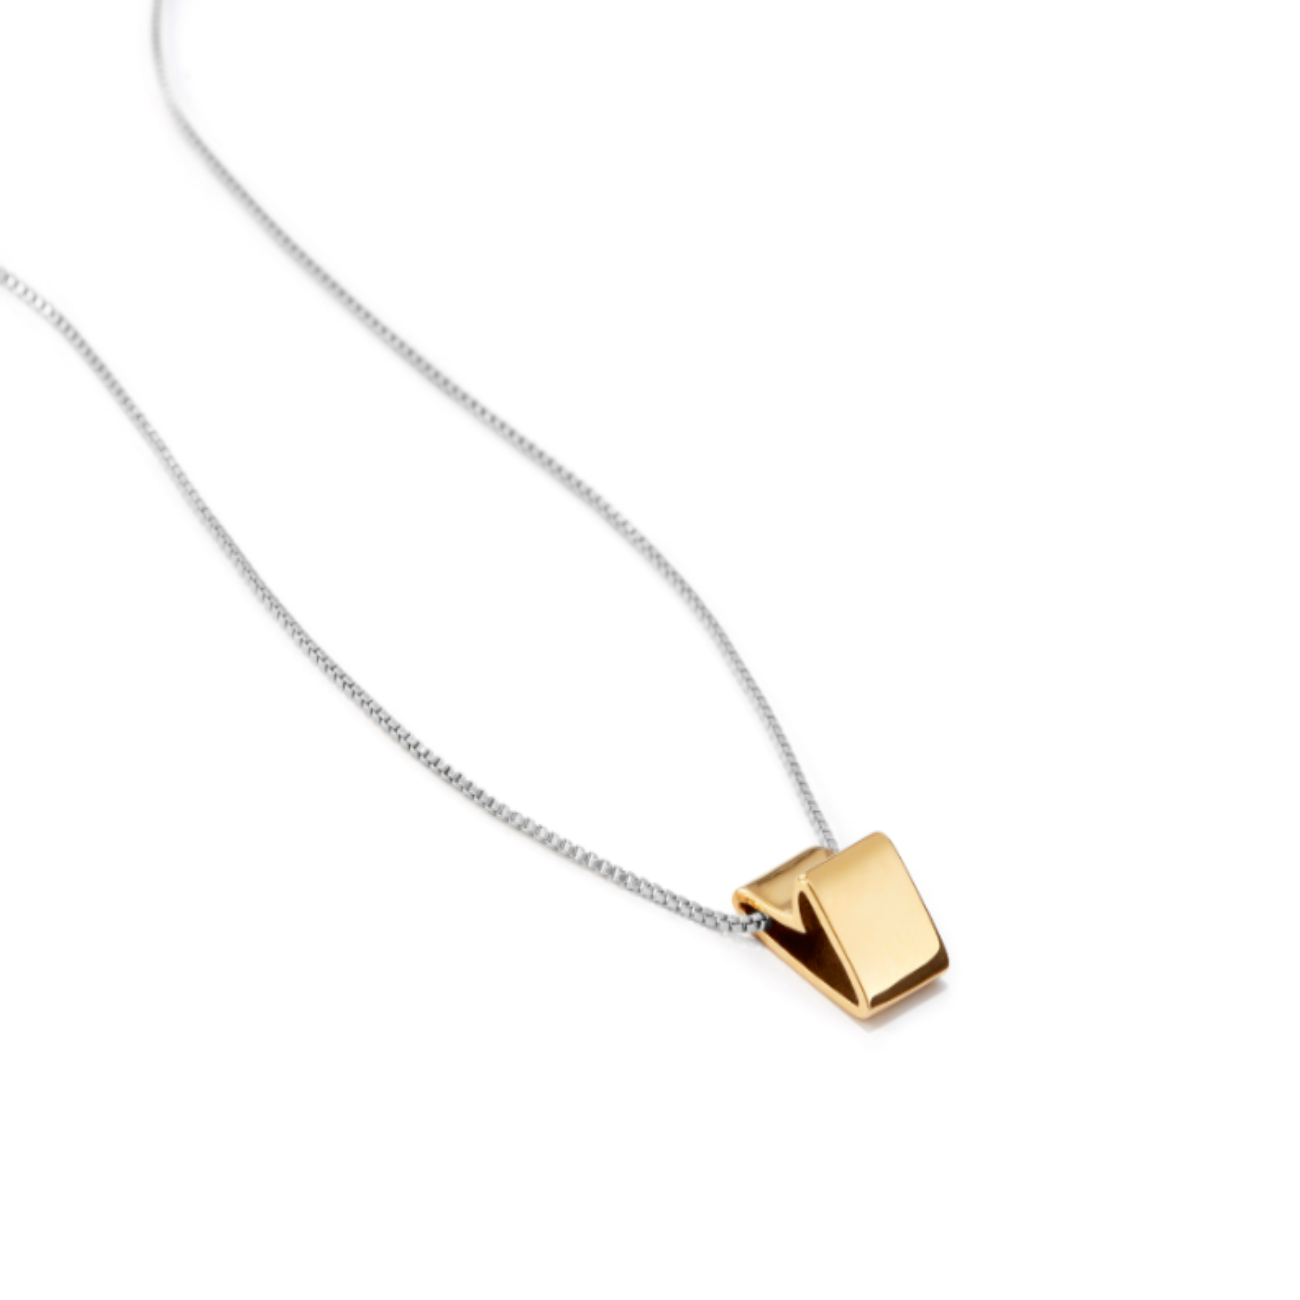 JENNY BIRD - ALL LOVE PENDANT IN TWO TONE